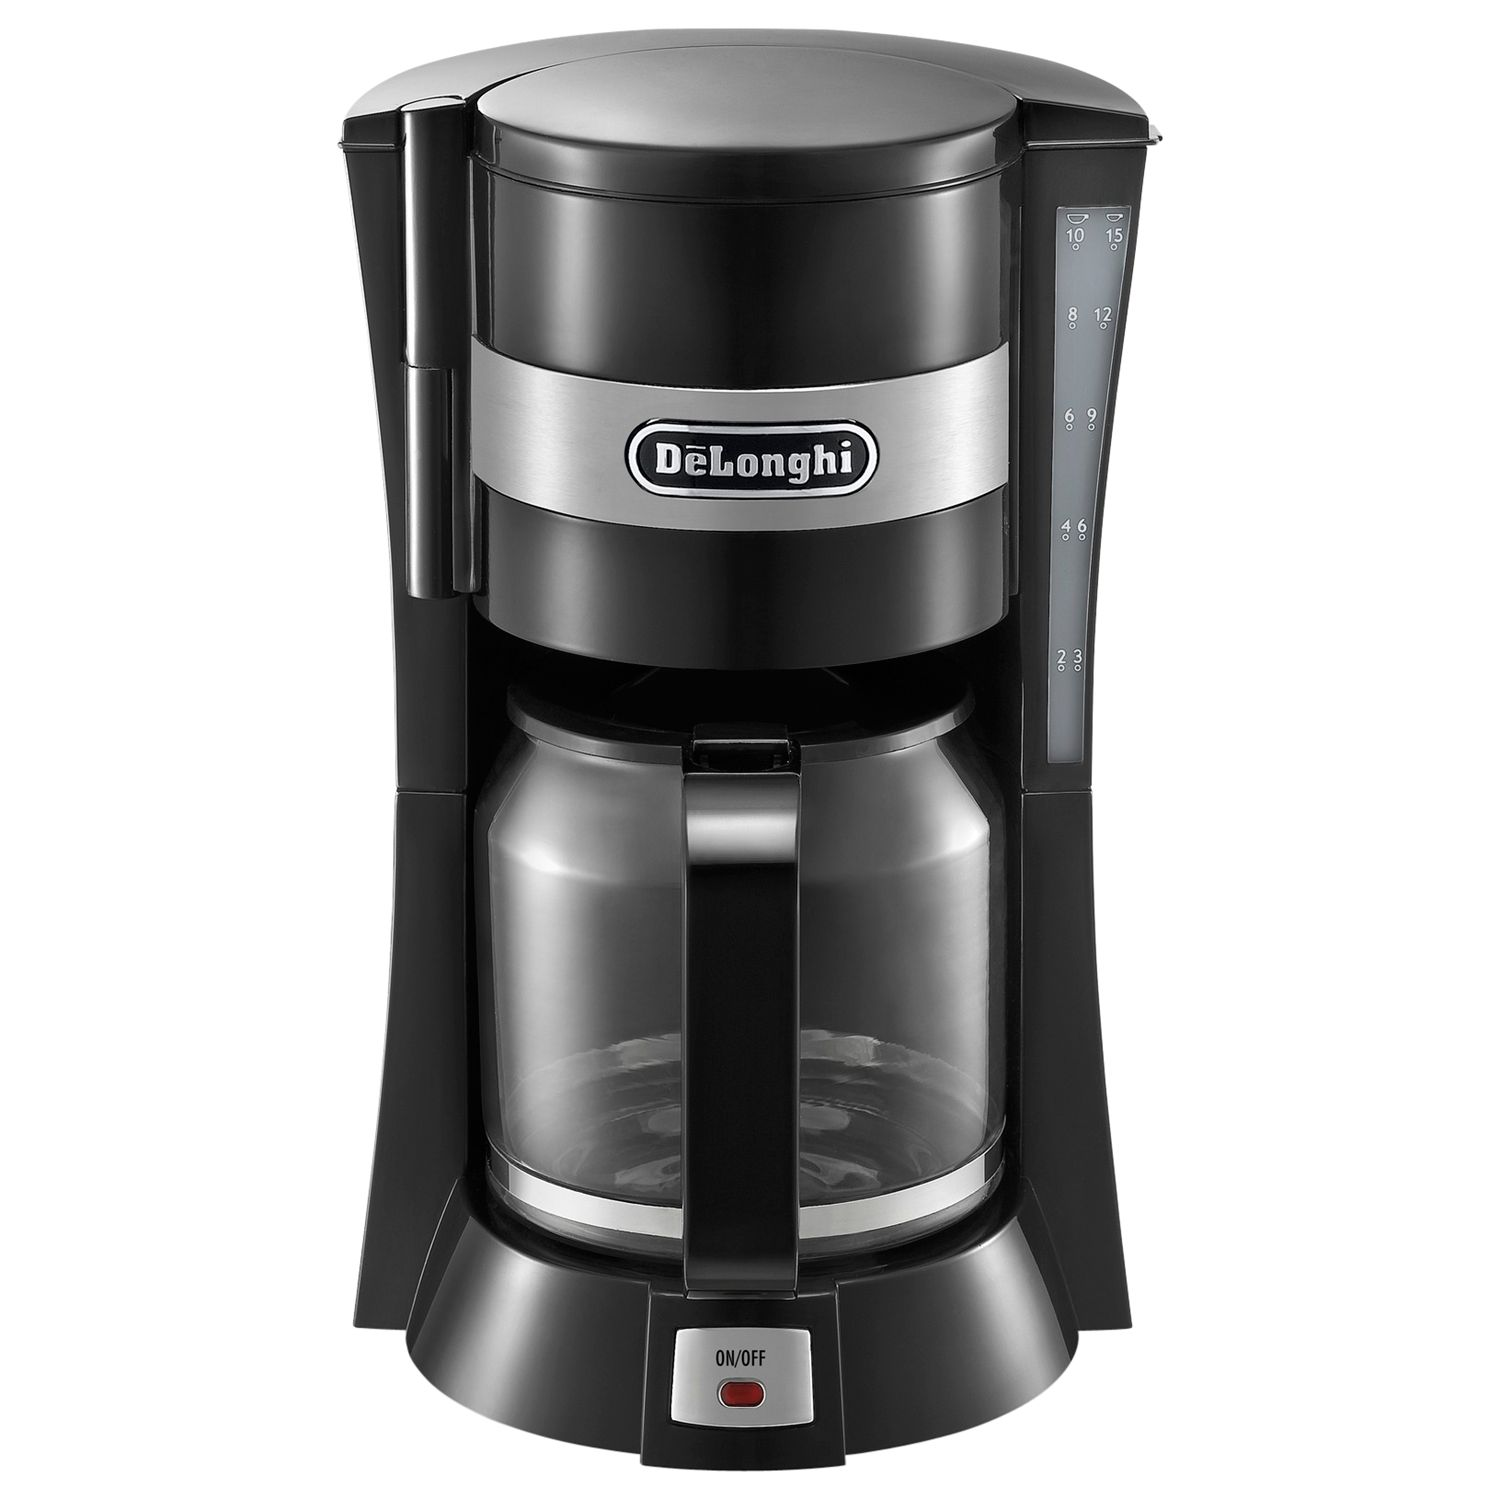 Buy De Longhi ICM15210 Filter Coffee Maker, Black John Lewis